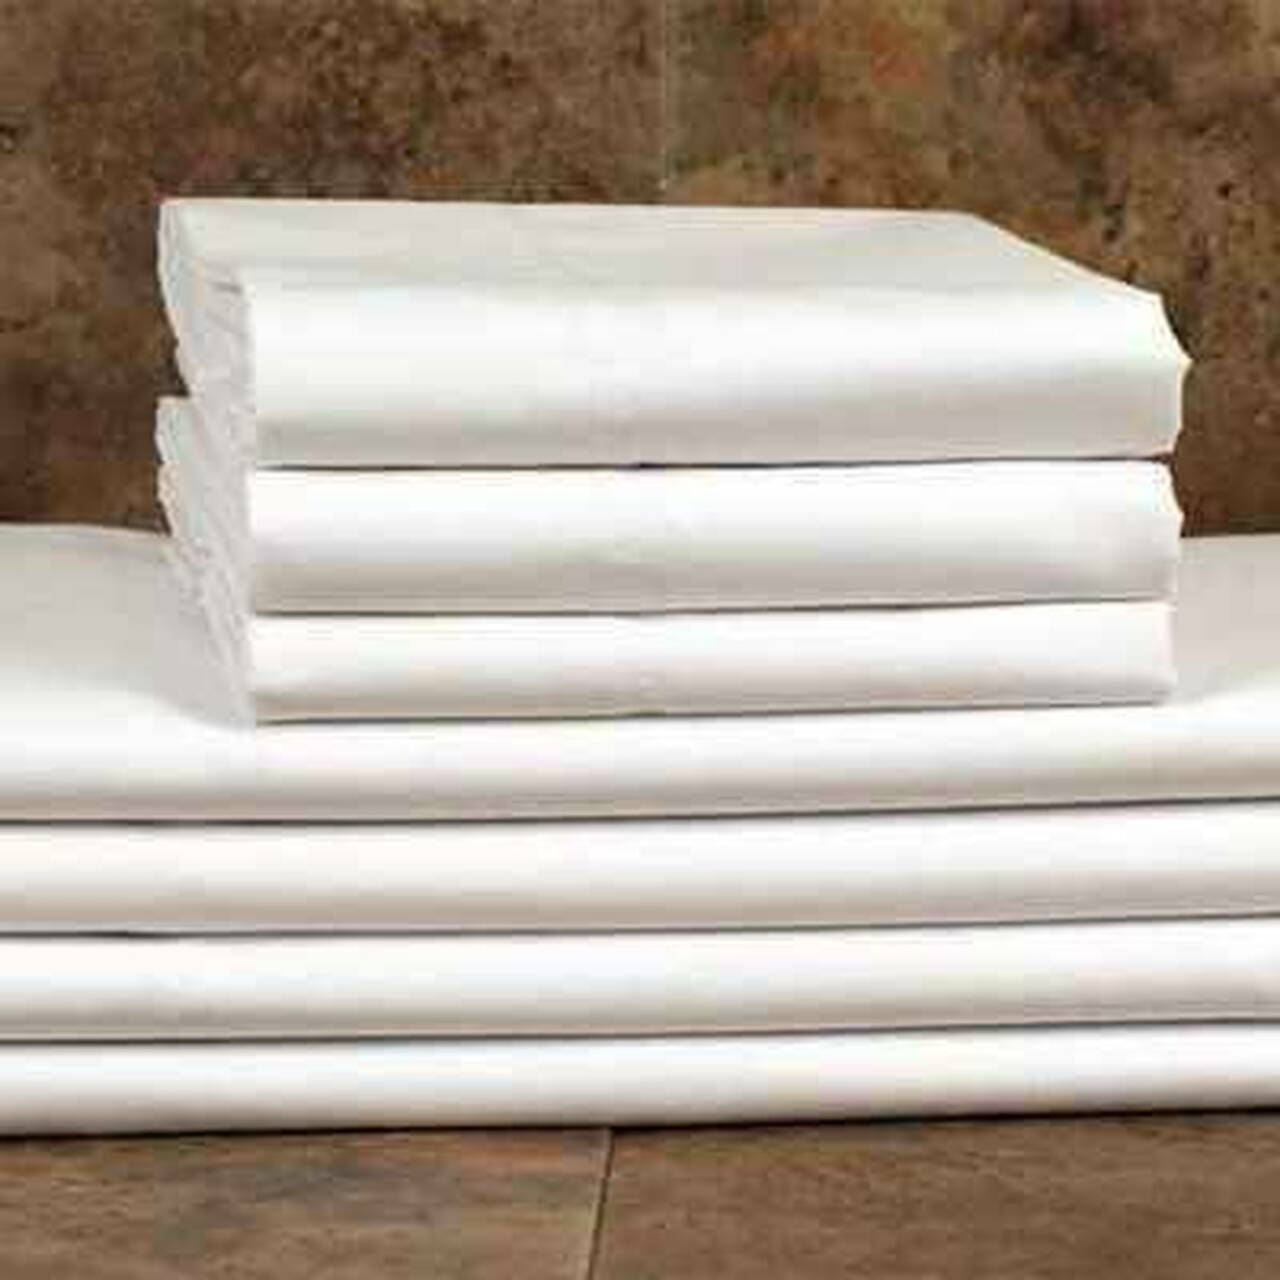 1888 Mills 1888 Mills or Oasis or Bed Skirt or Pack of 6